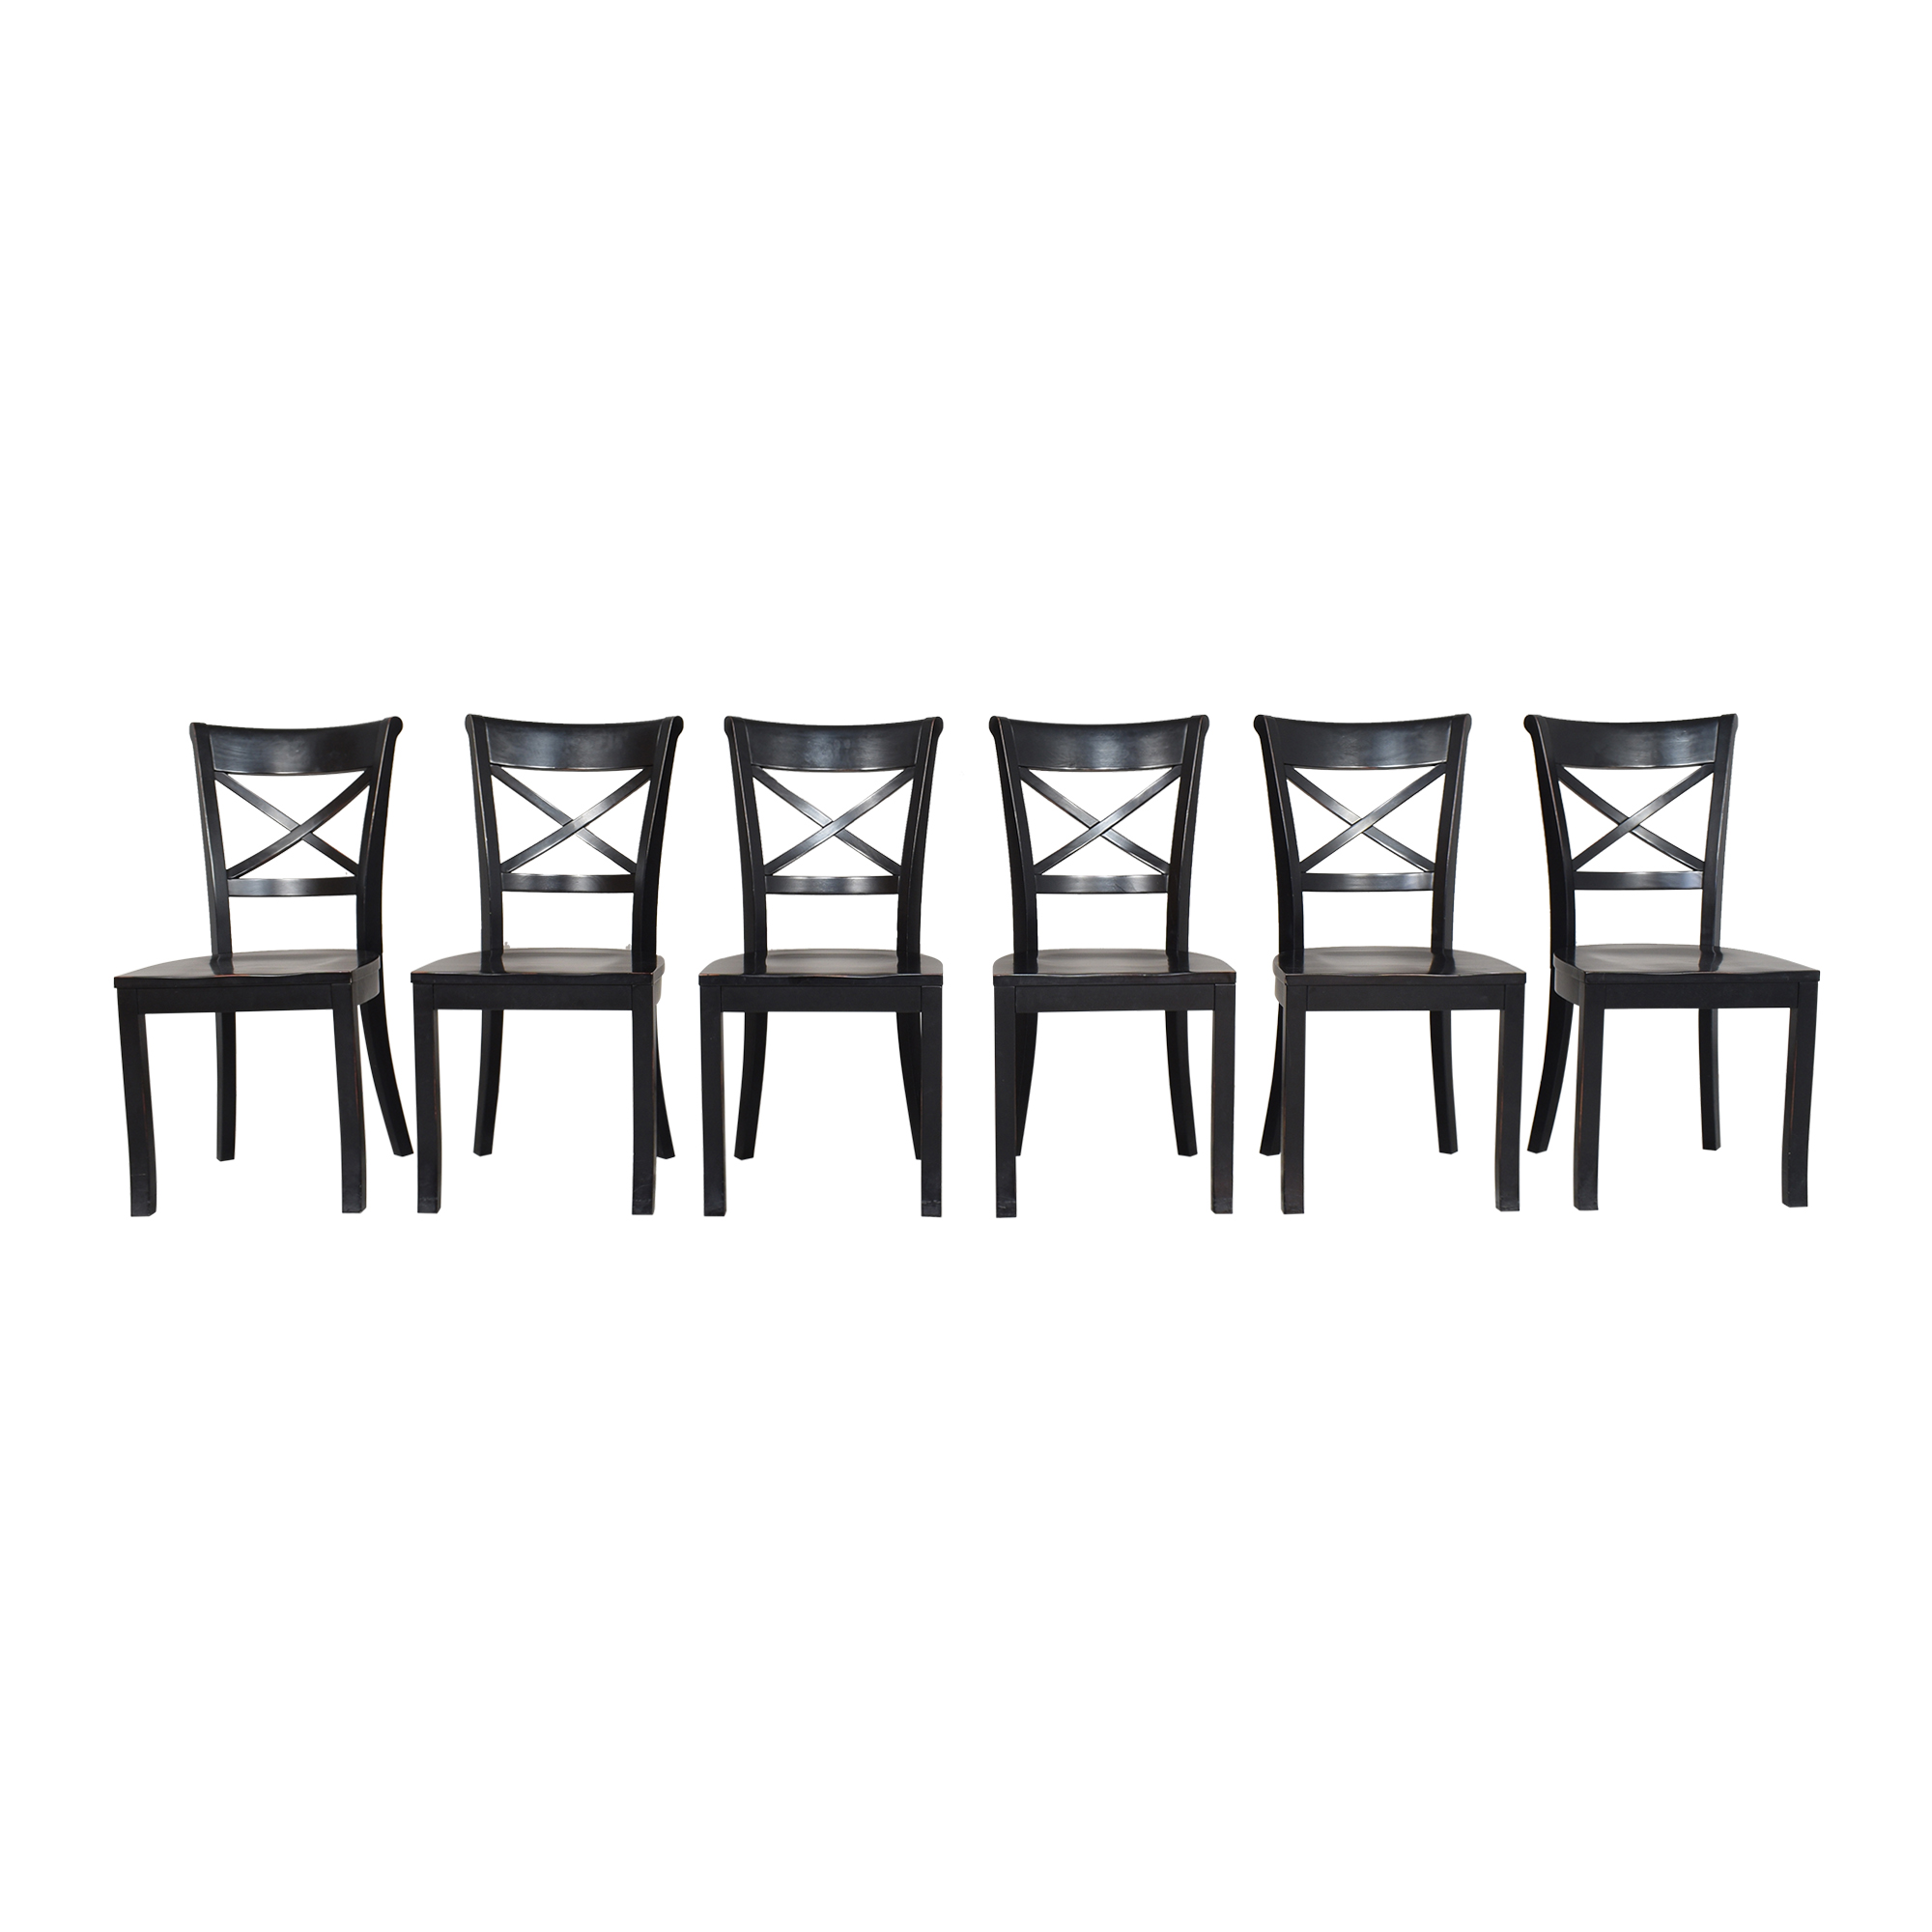 buy Crate & Barrel Vintner X Back Dining Chairs Crate & Barrel Chairs